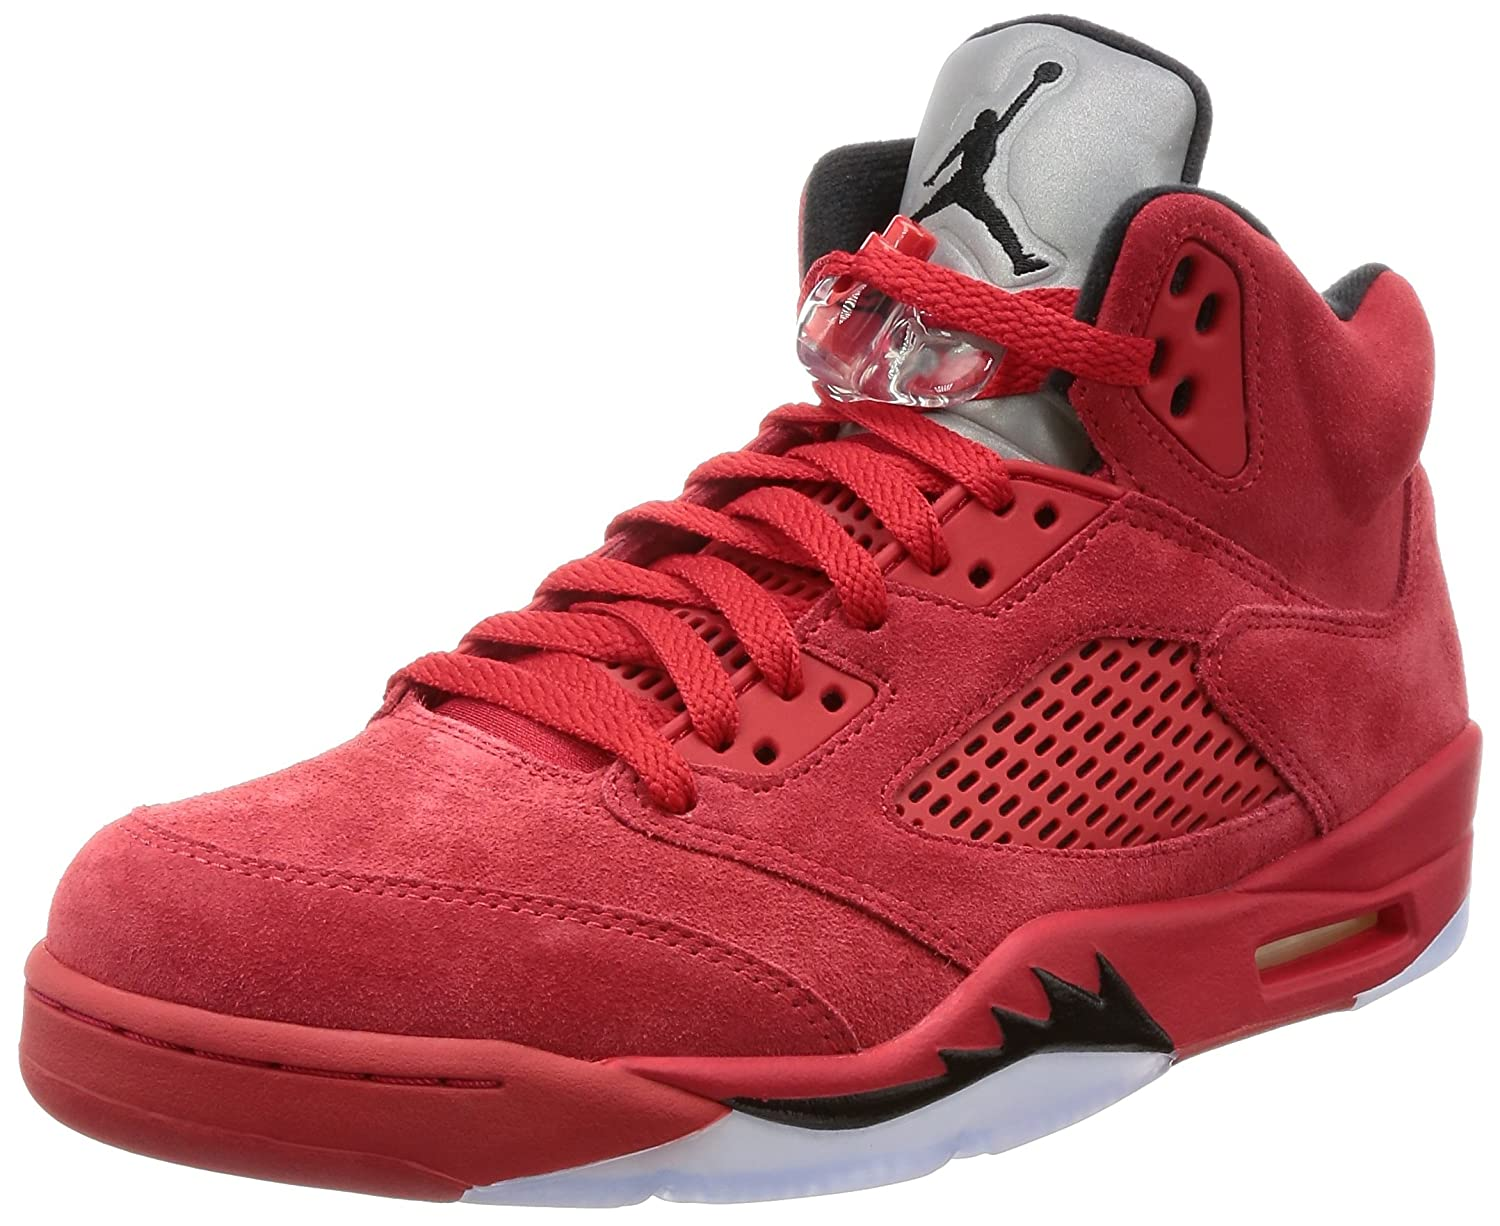 low priced a5e99 7cd14 Air Jordan 5 Retro